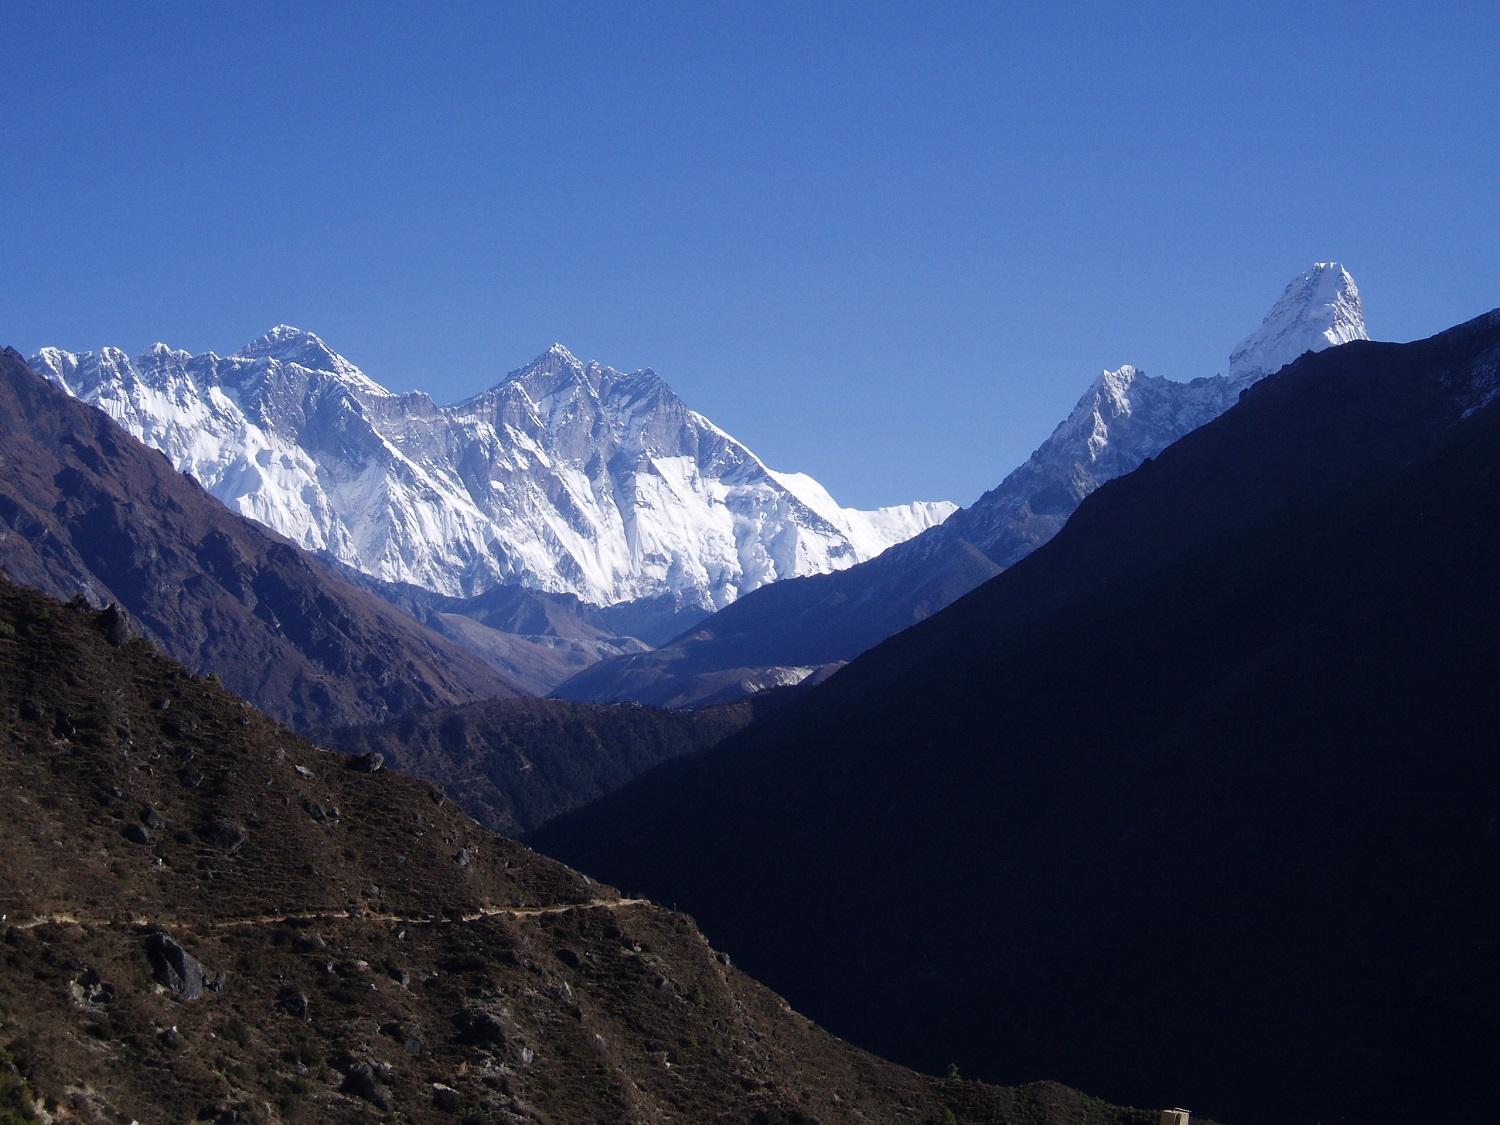 Mount everest base camp from namche bazaar - Best place to visit in nepal for adventure torurists